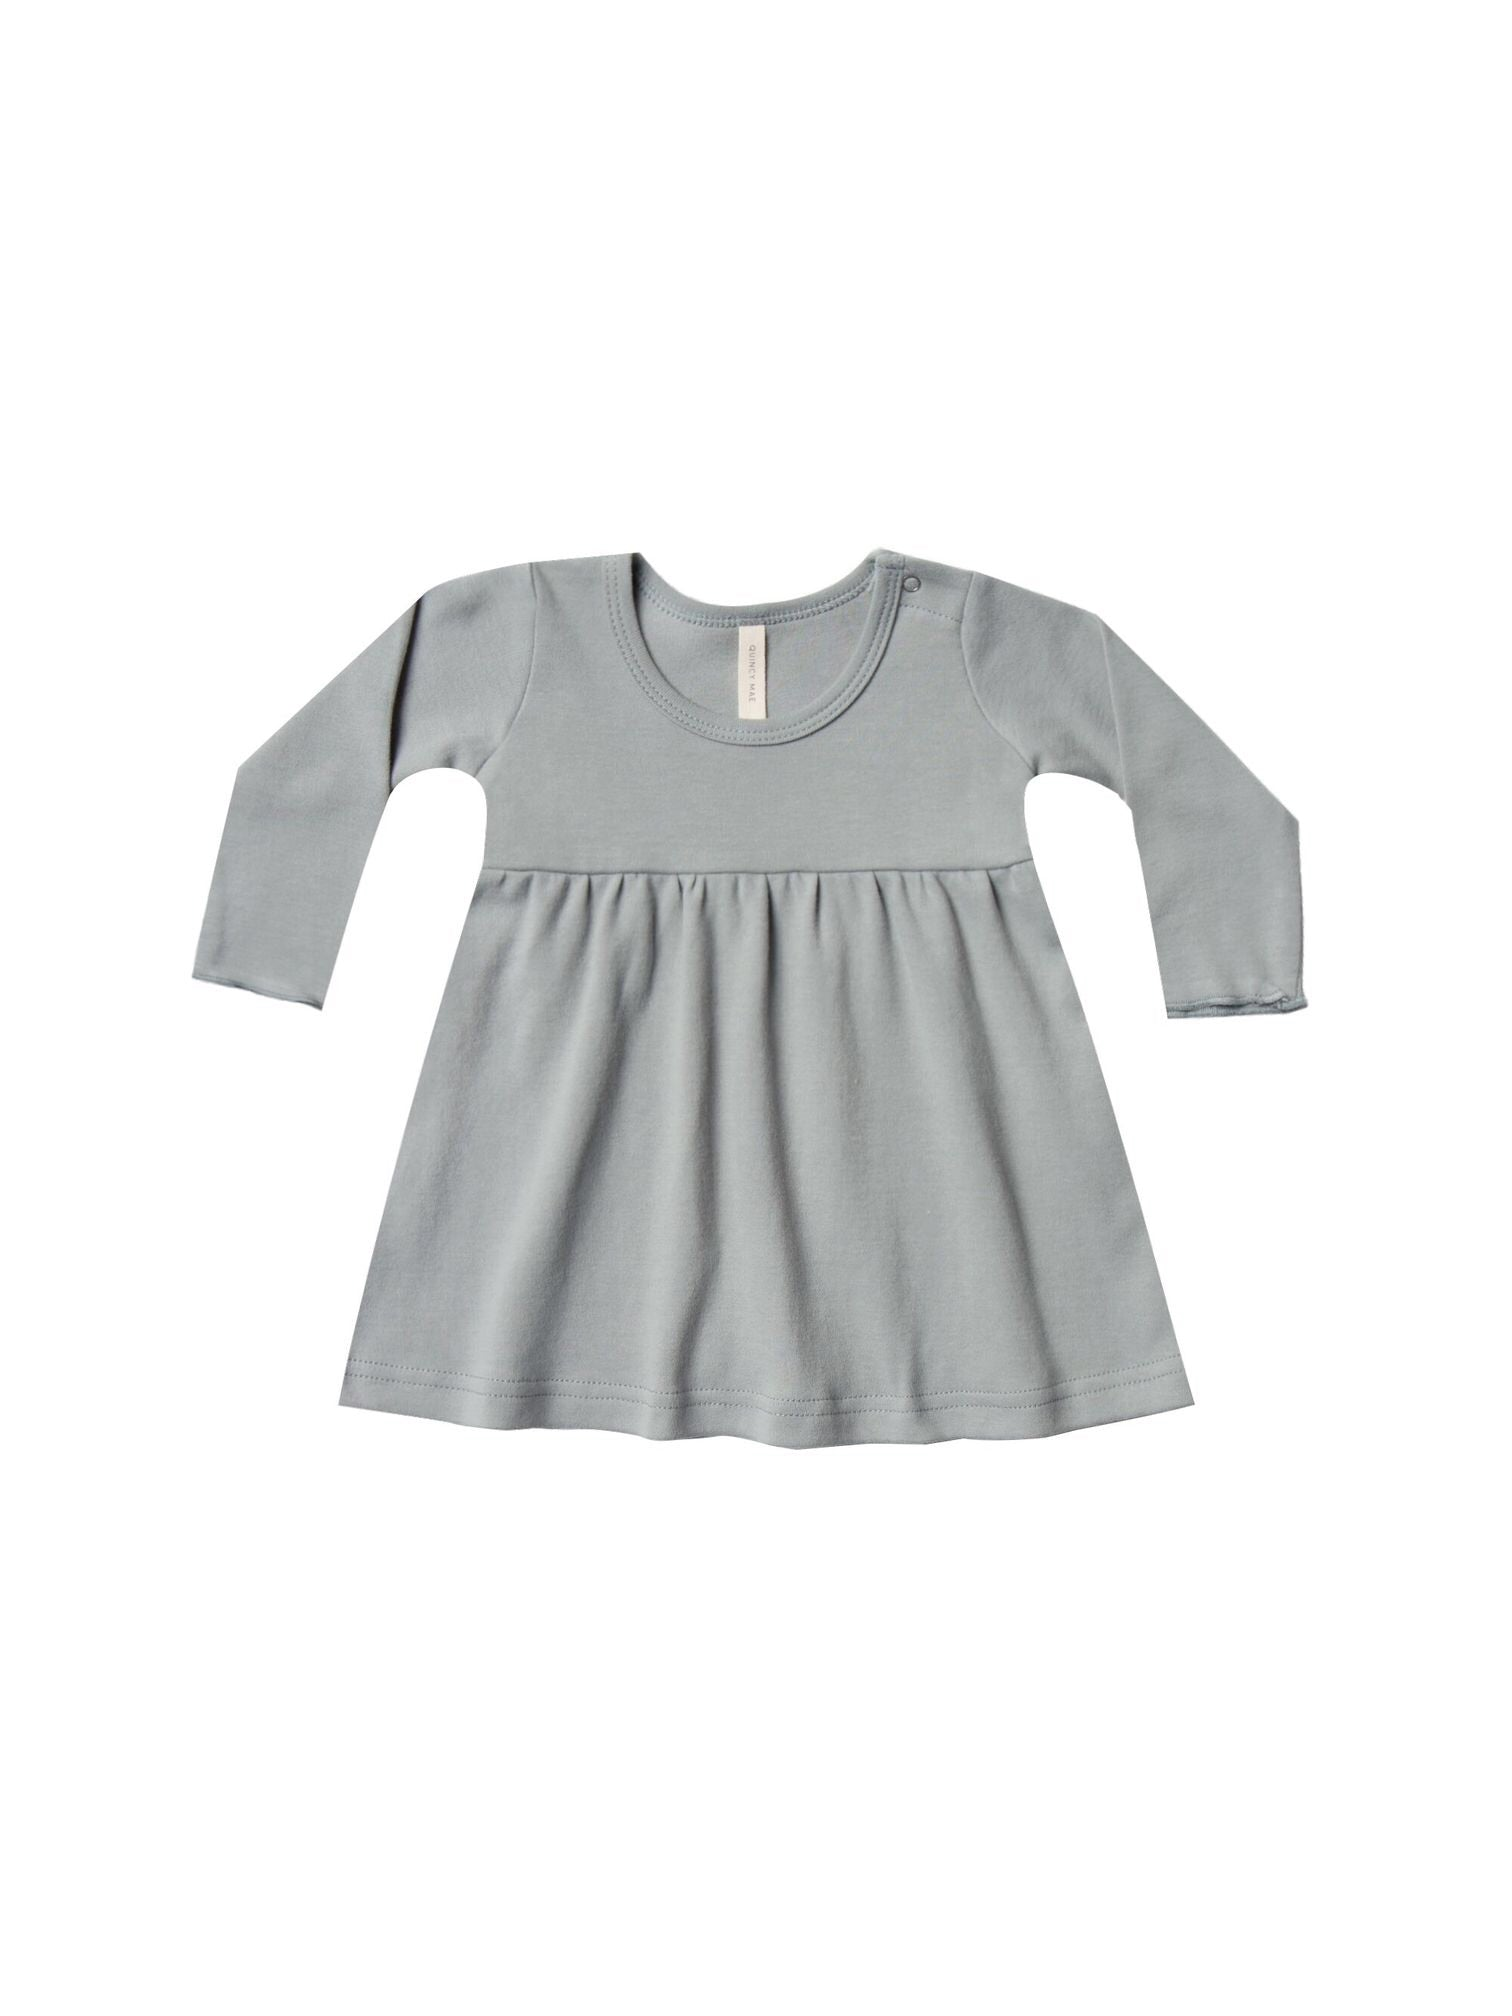 Quincy Mae baby dress dusty blue